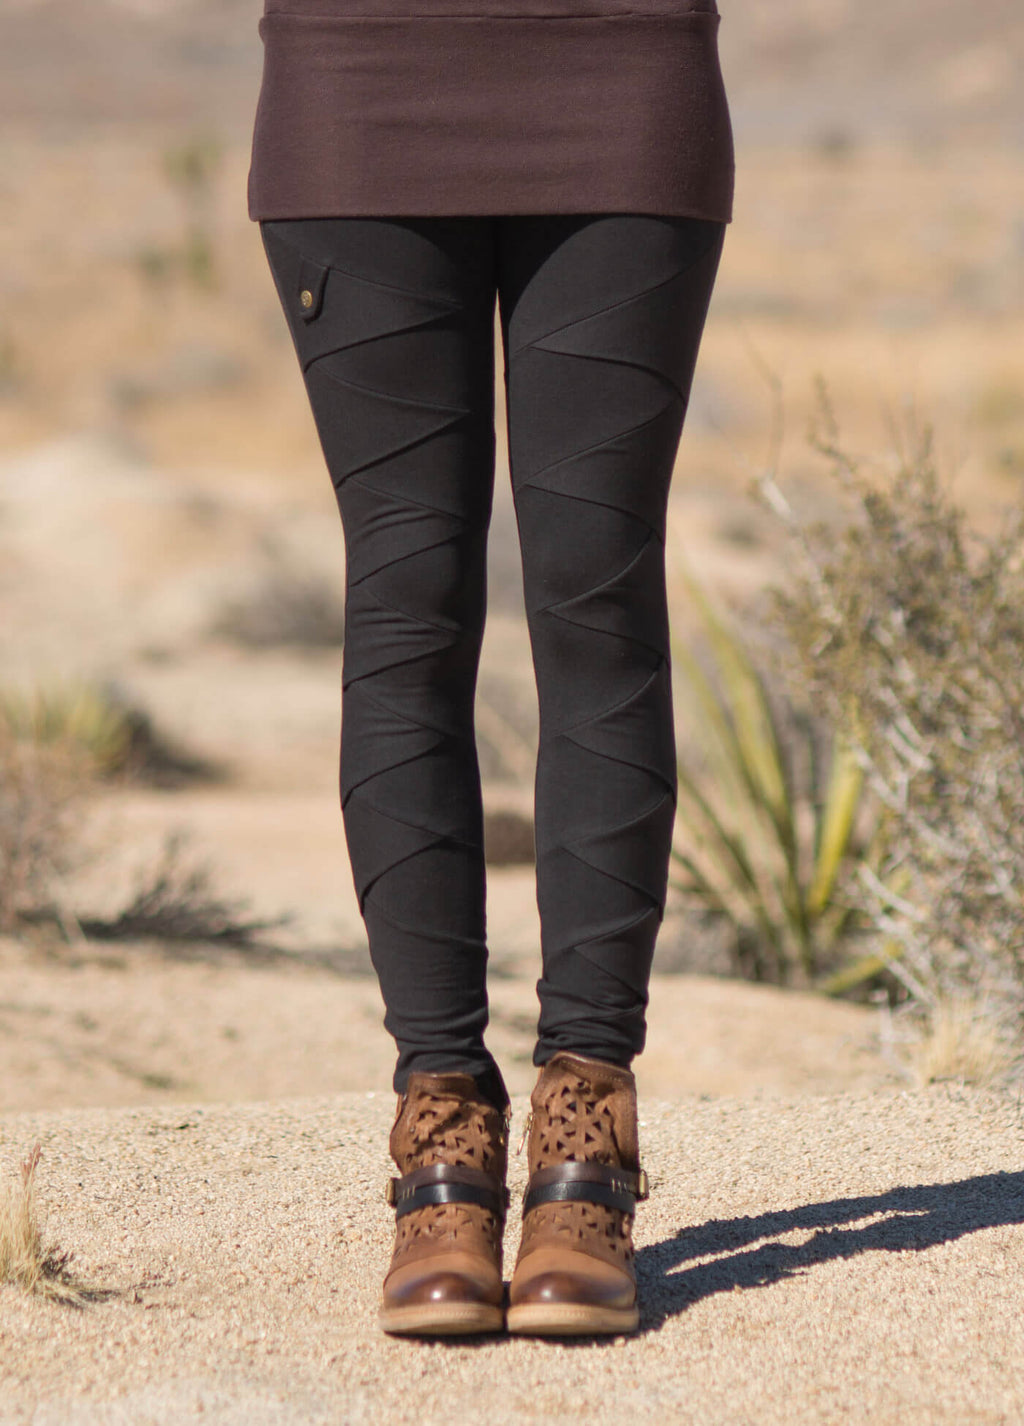 bamboo and organic cotton black leggings with criss cross seam pattern